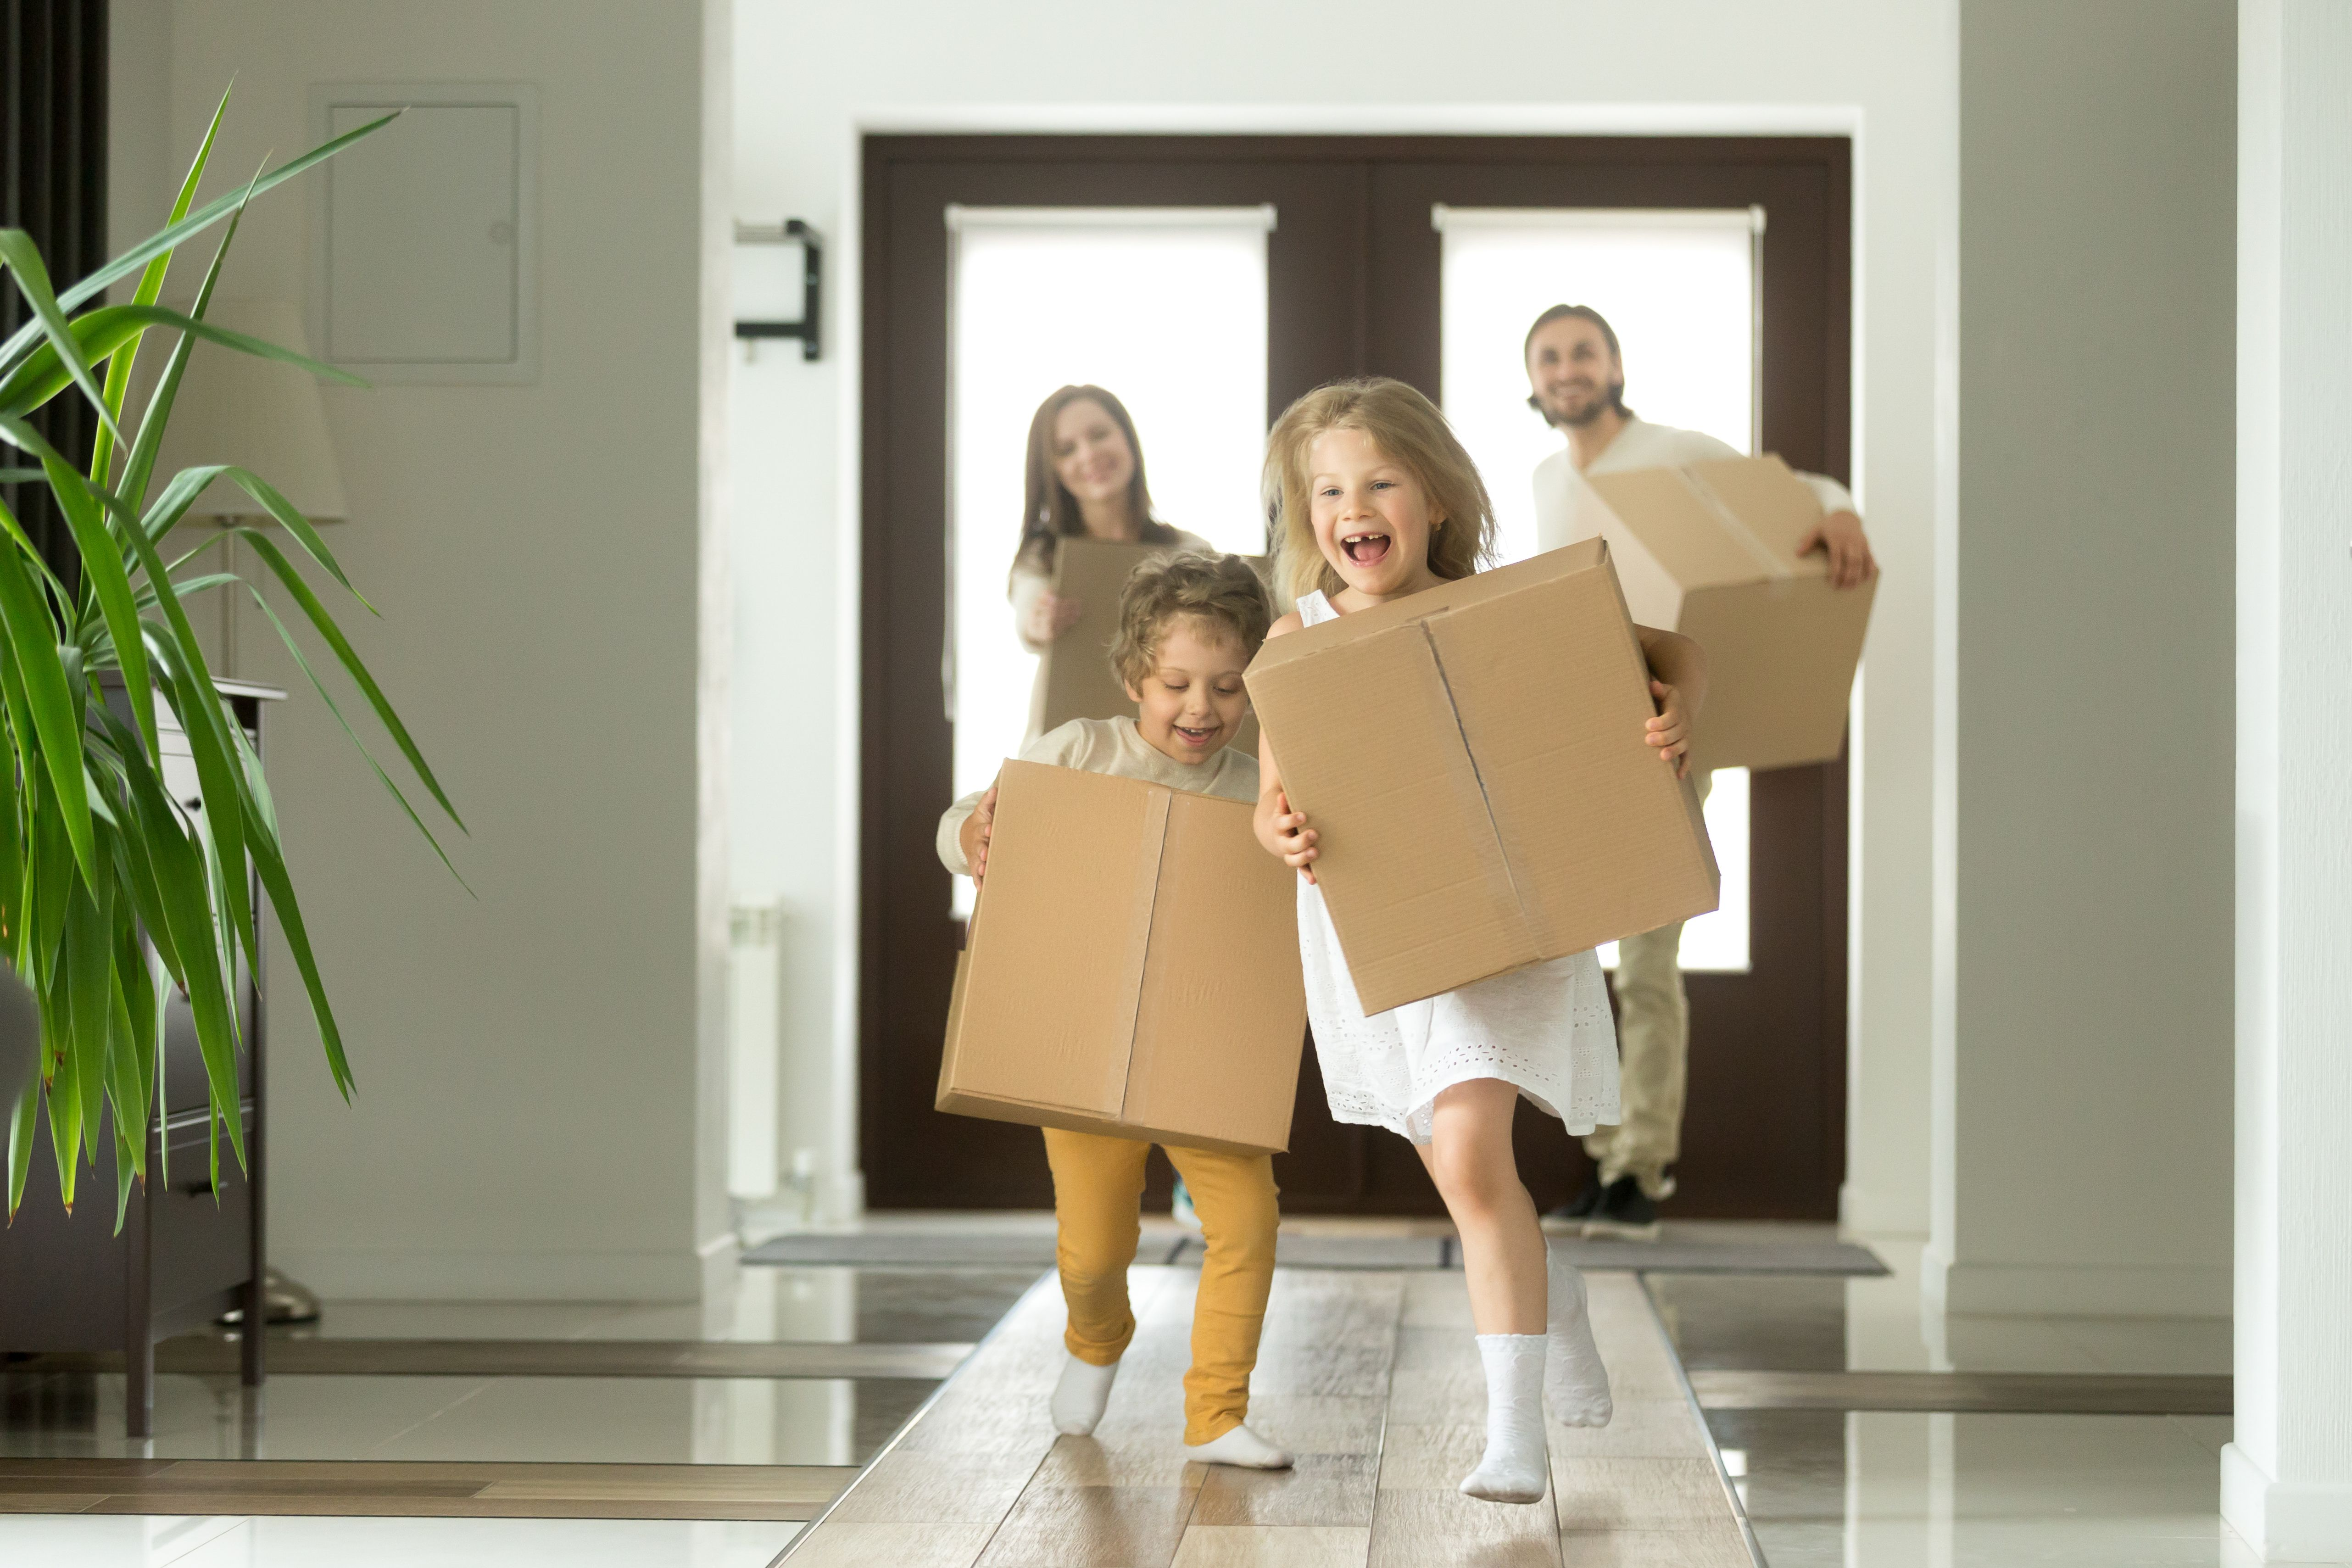 A family of 4 in white clothes holding moving boxes in their arms, running with big smiles into their new Build To Rent homes.